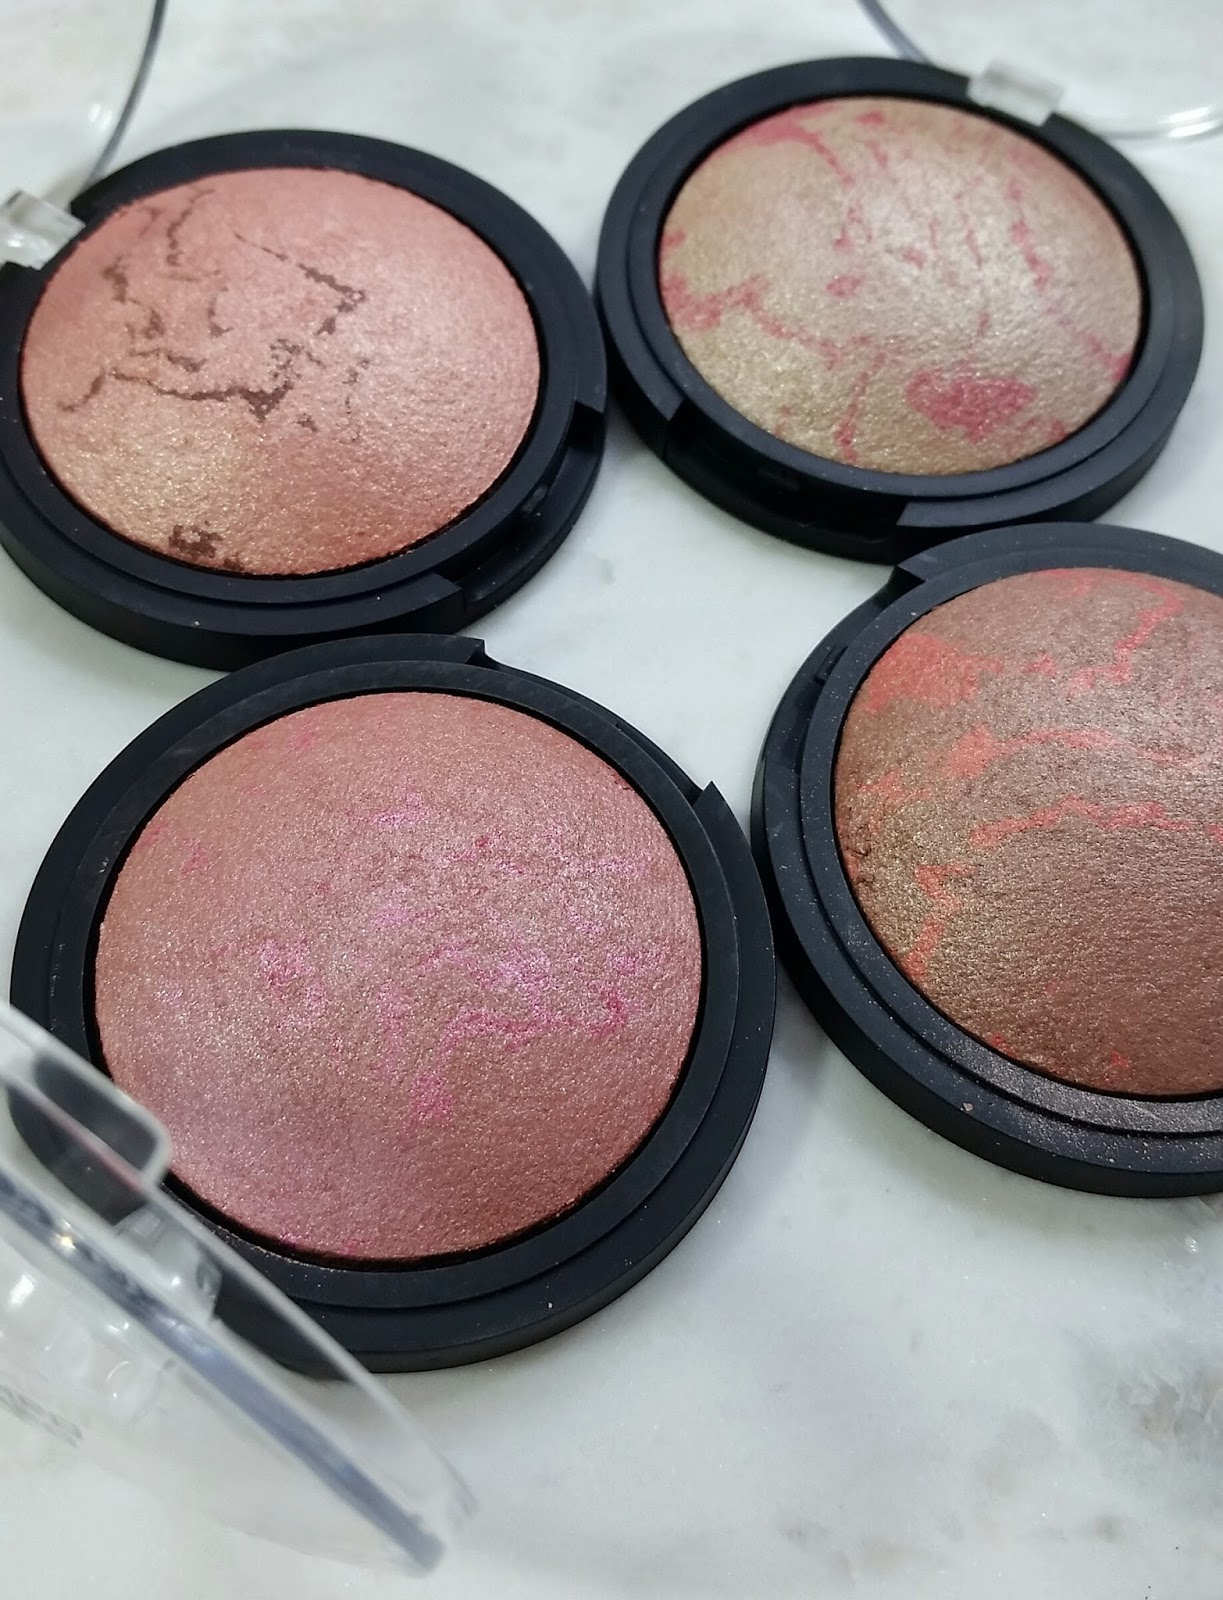 elf Baked Blush Review & Swatches